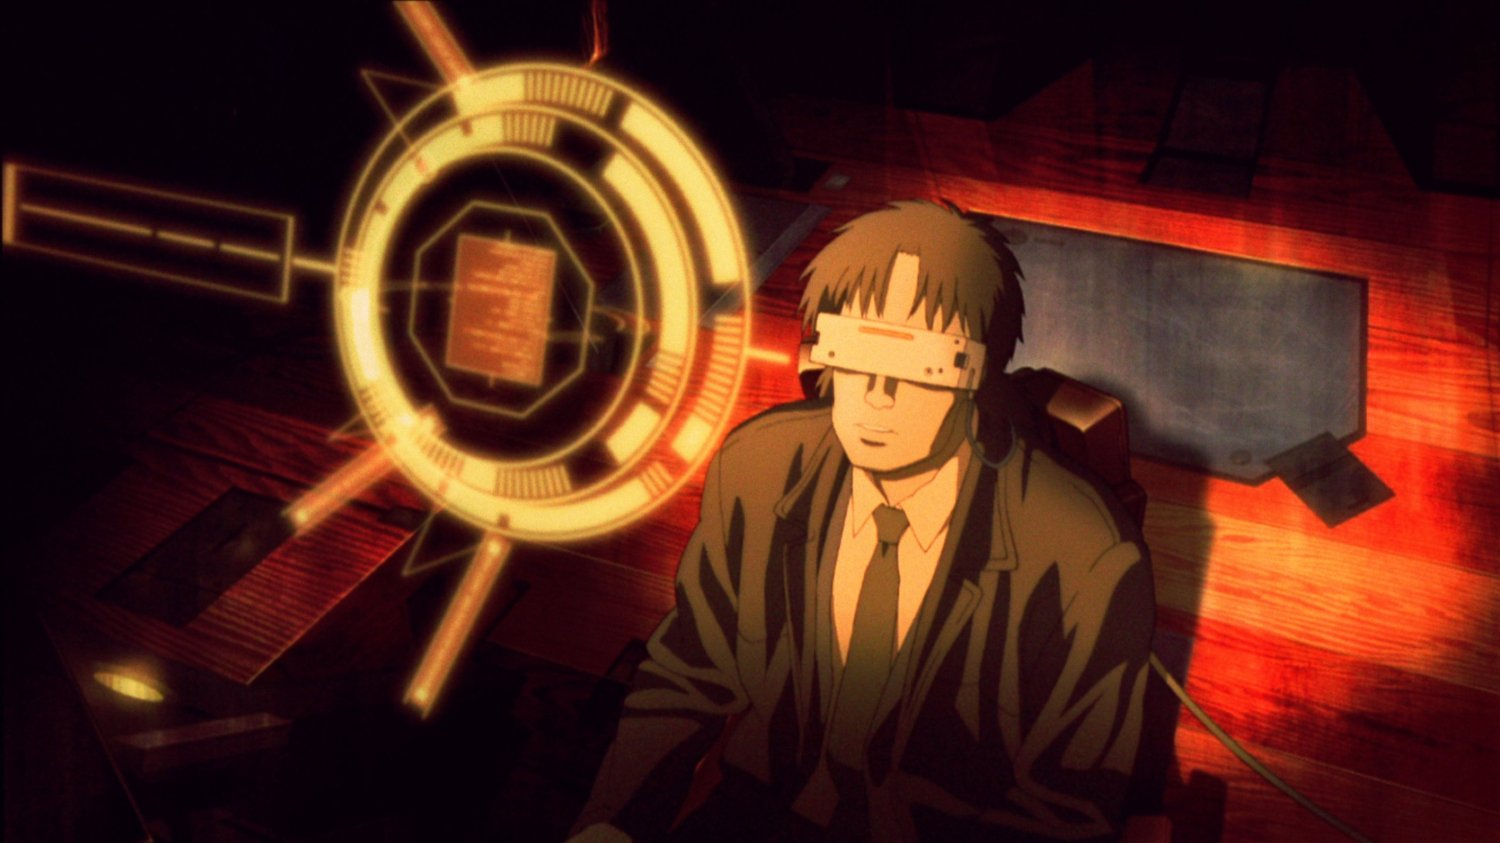 187 Ghost In The Shell 2 Innocence